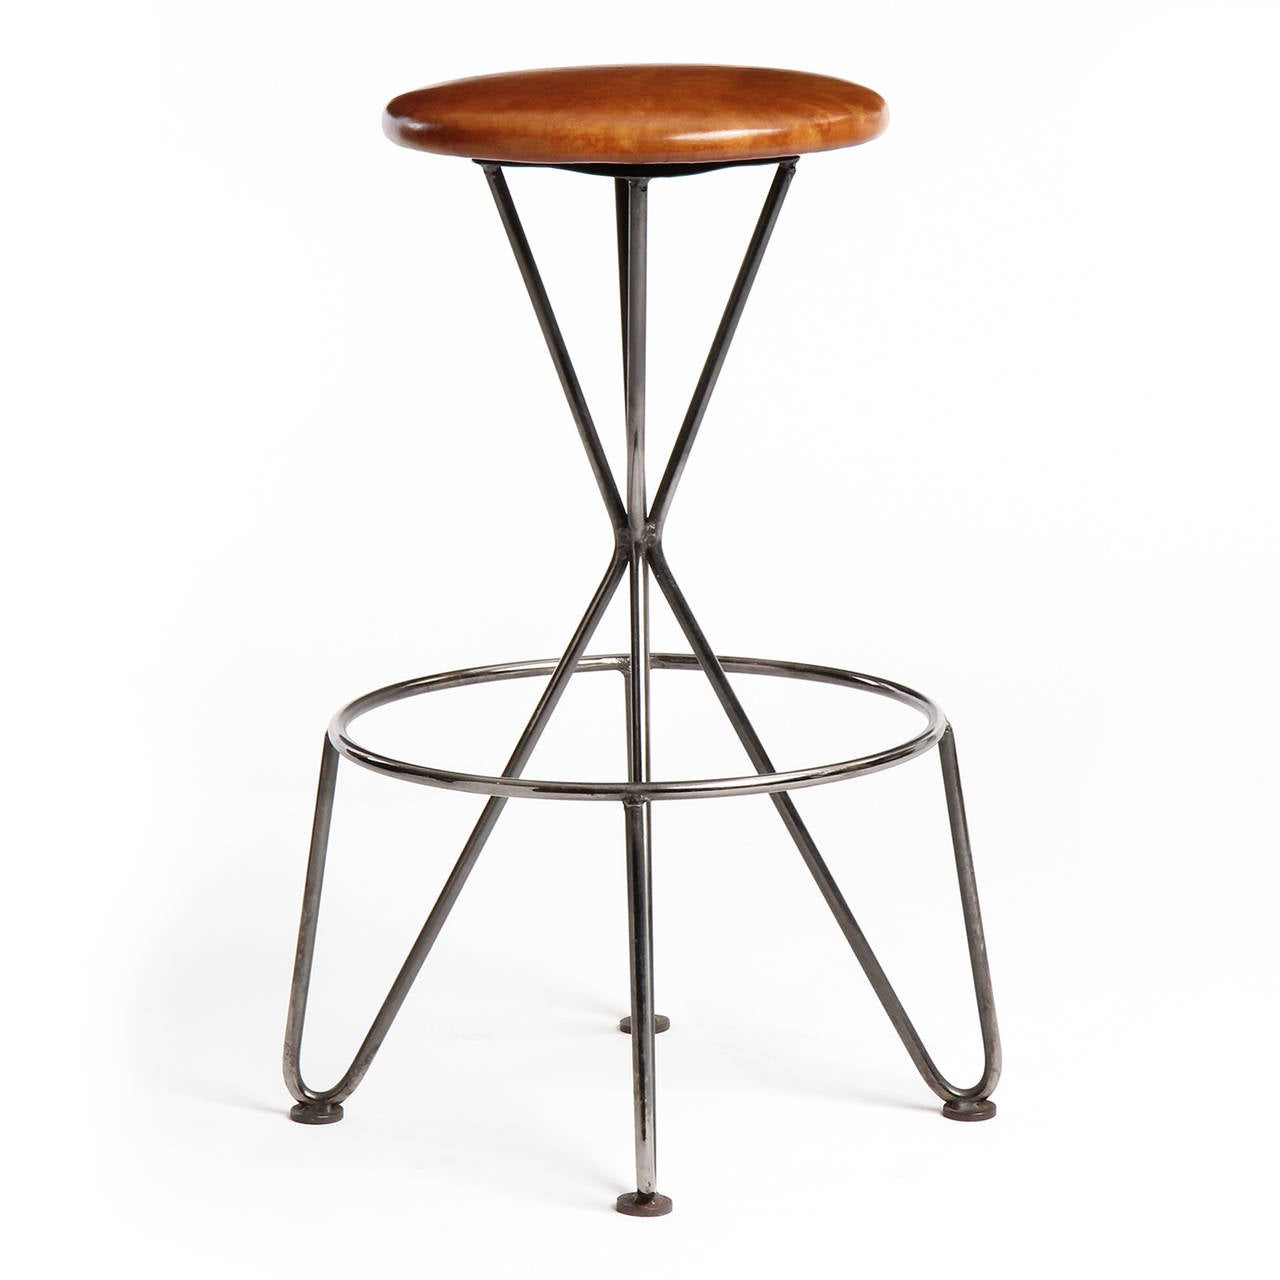 A stool having a sinuous steel base with a floating round foot rail supporting a swiveling leather upholstered seat.